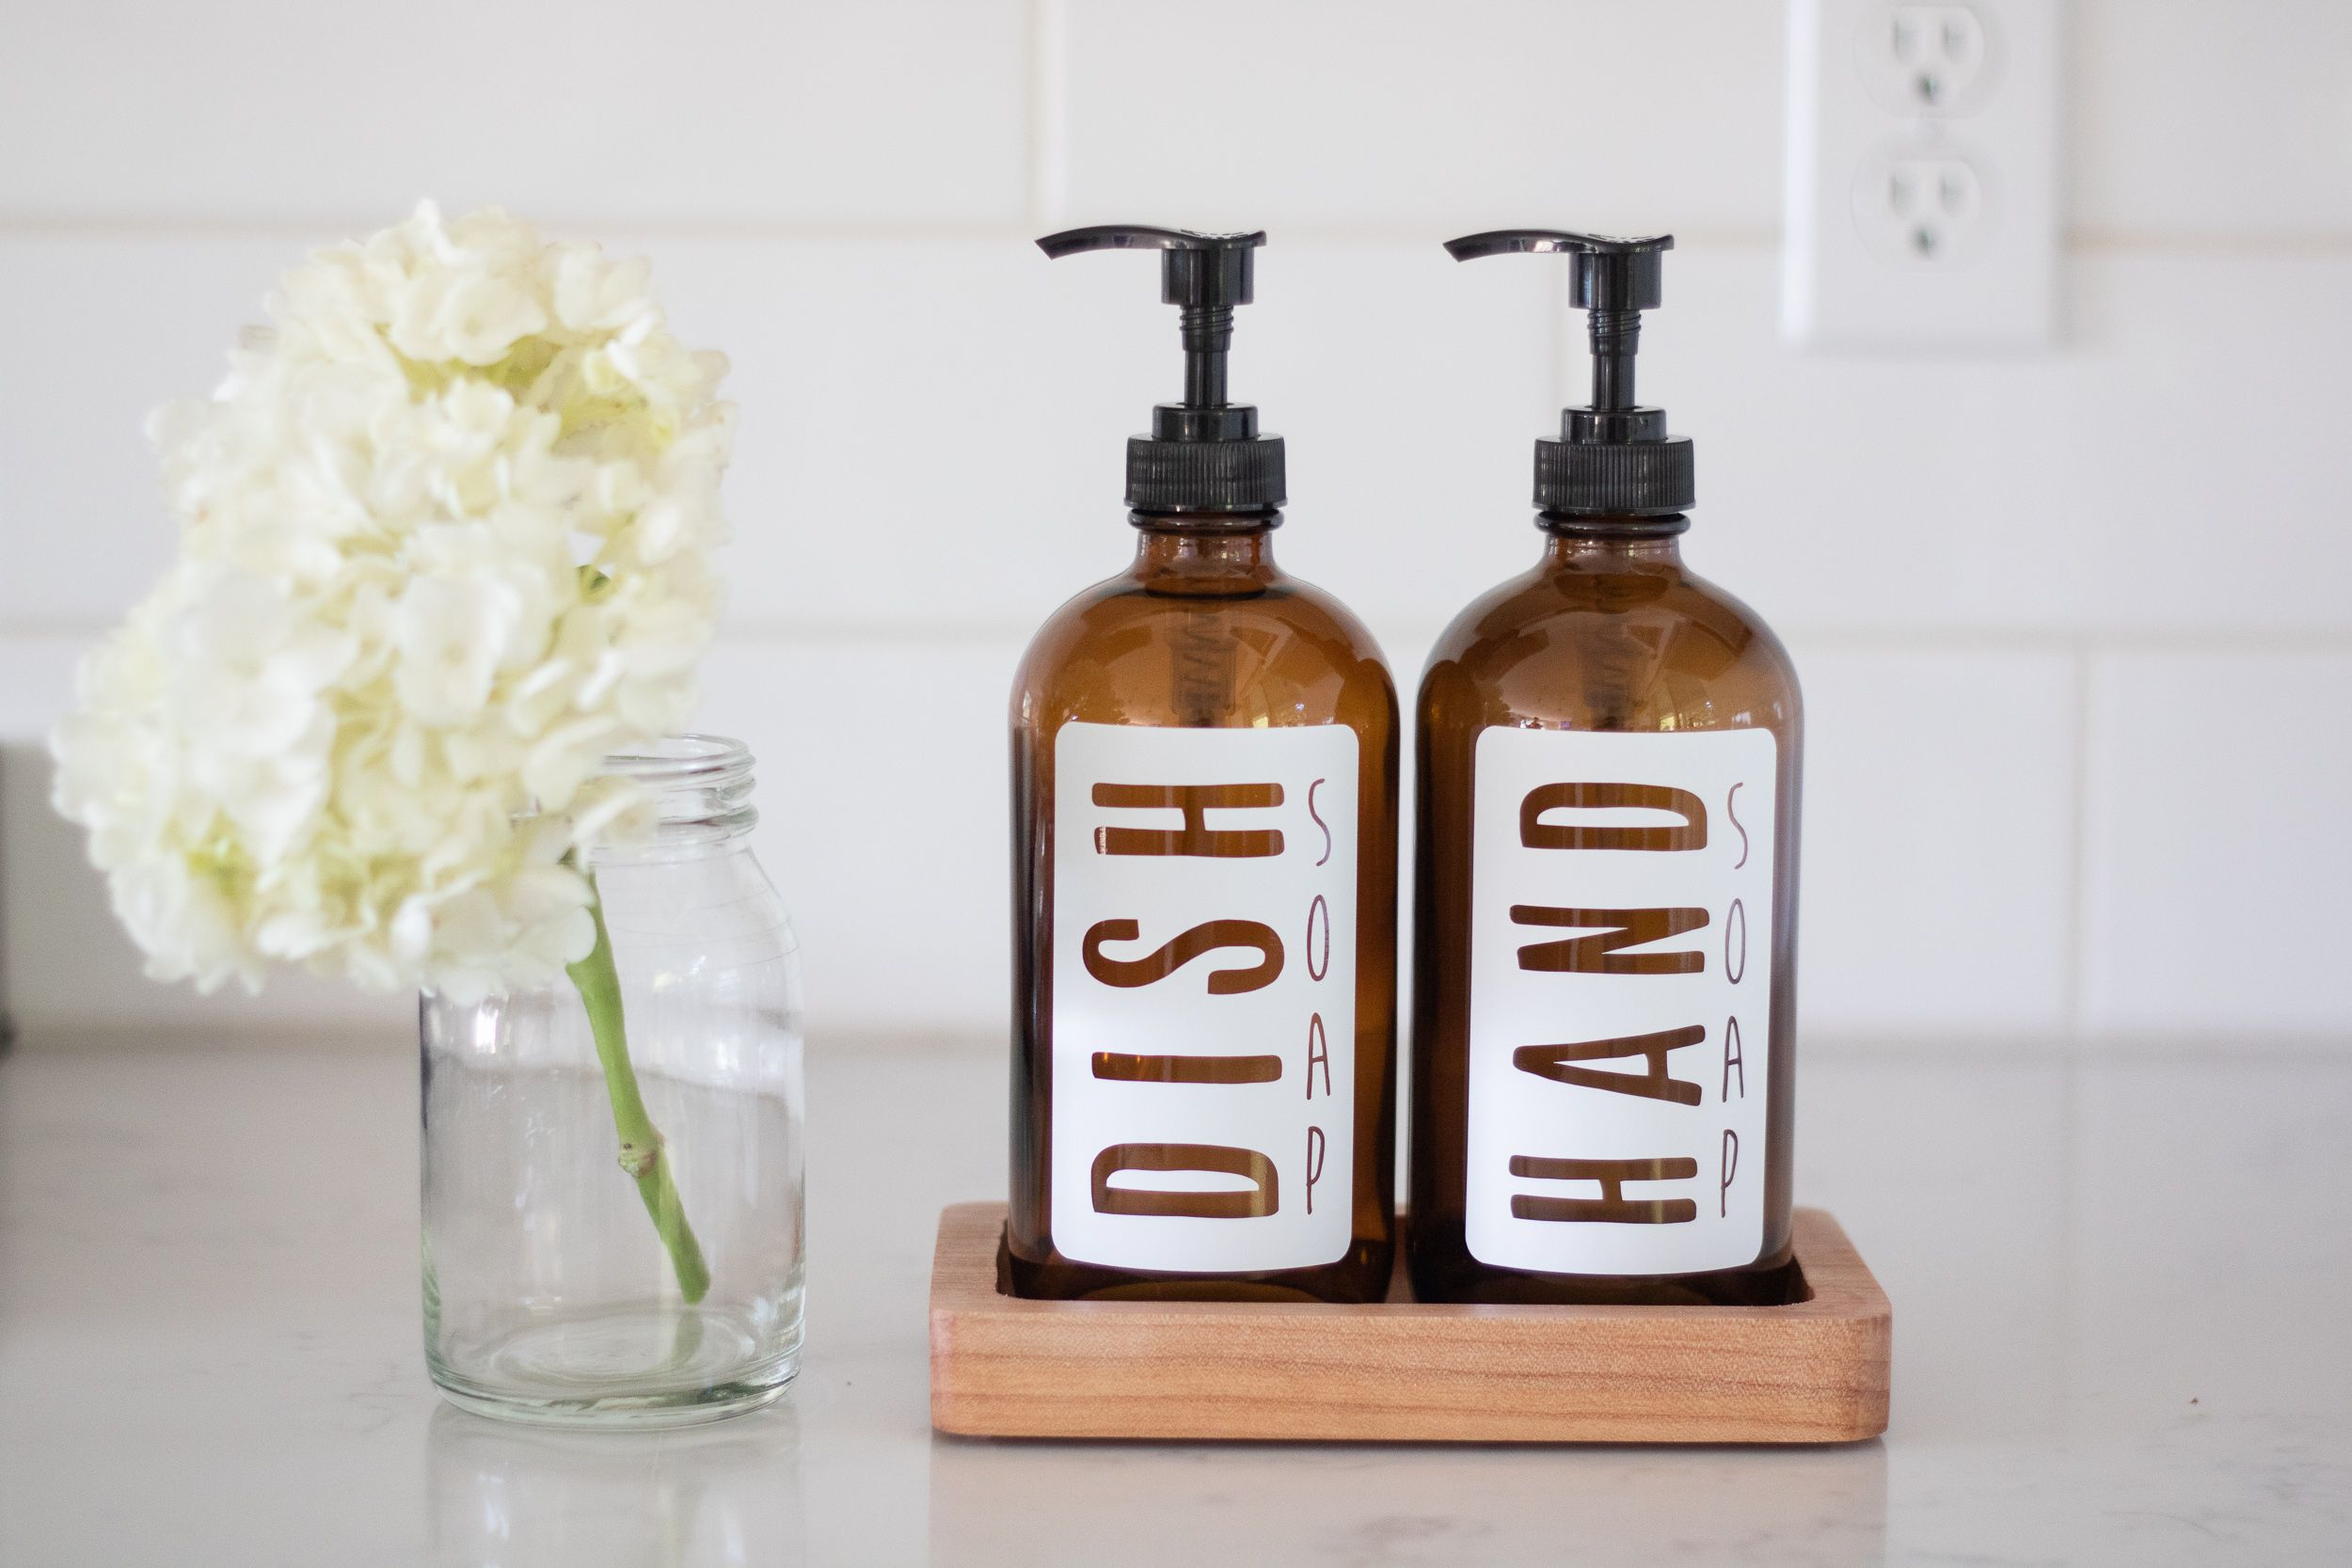 Amber Glass Hand And Dish Soap Dispenser Set Hand And Dish Etsy Dish Soap Dispenser Kitchen Soap Dispenser Glass Soap Bottle